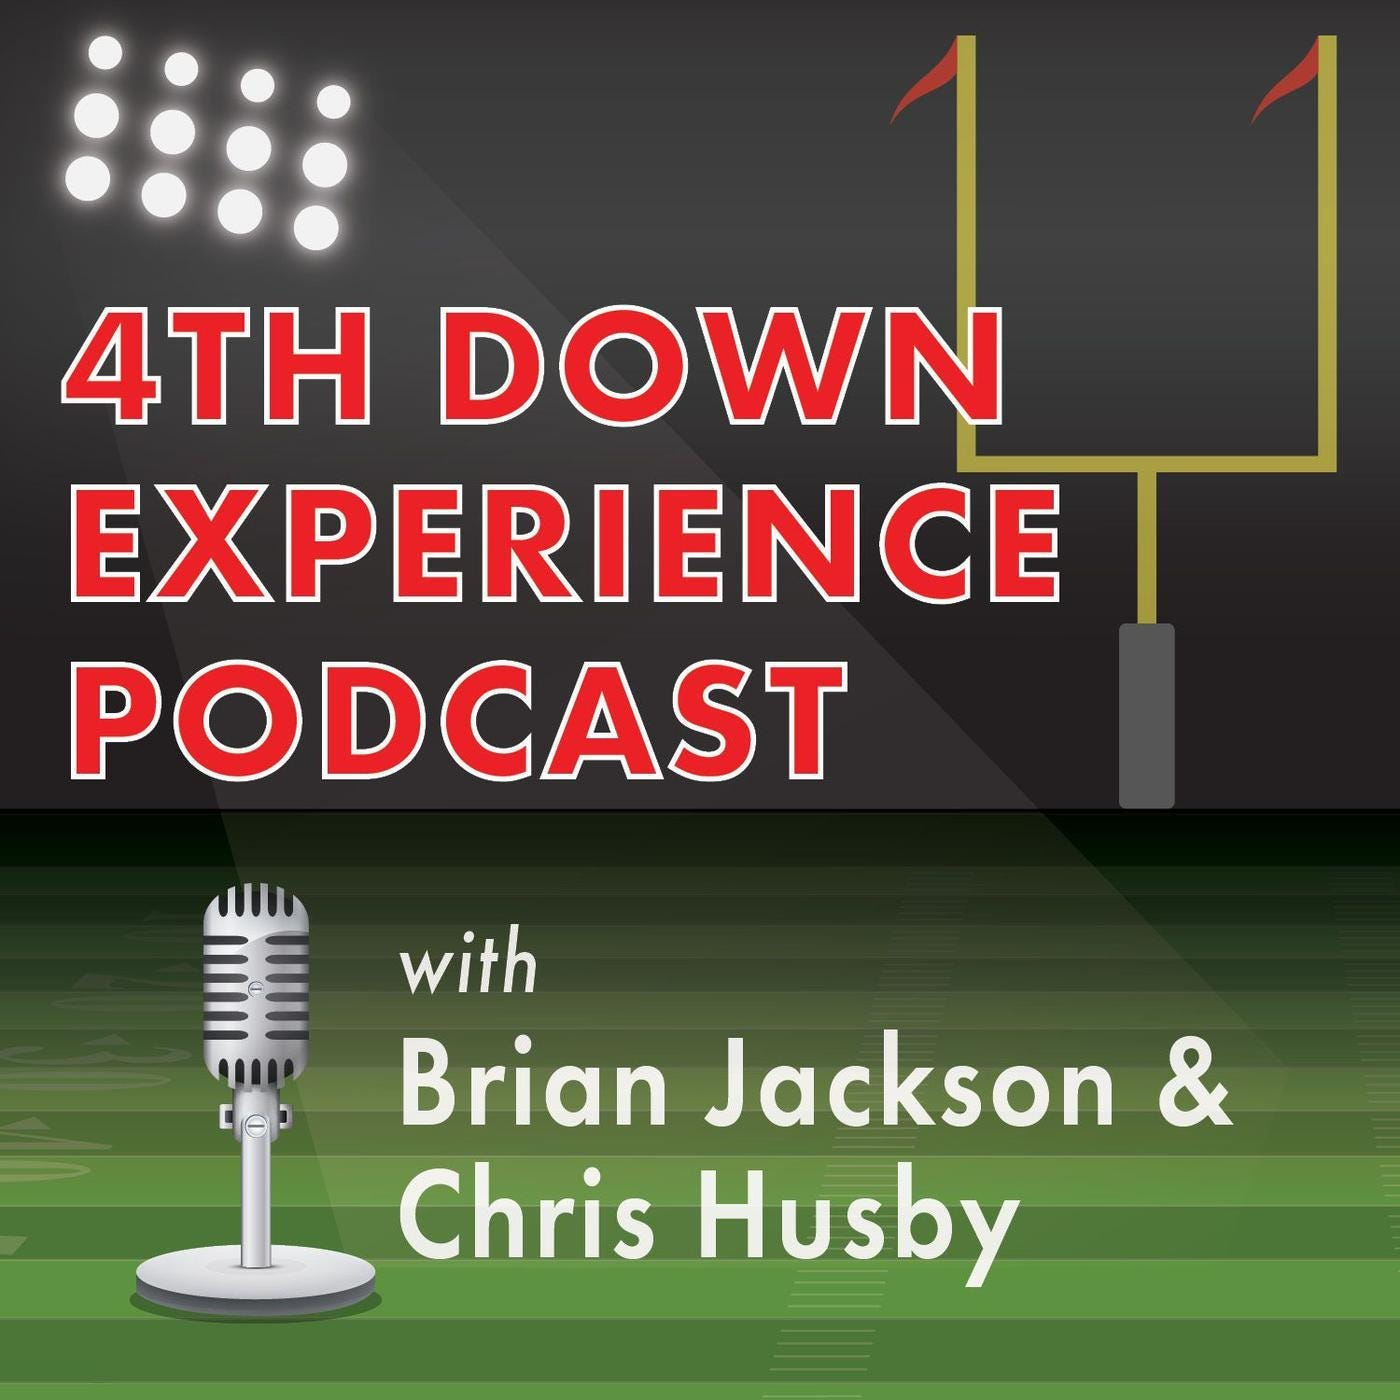 4th Down Experience